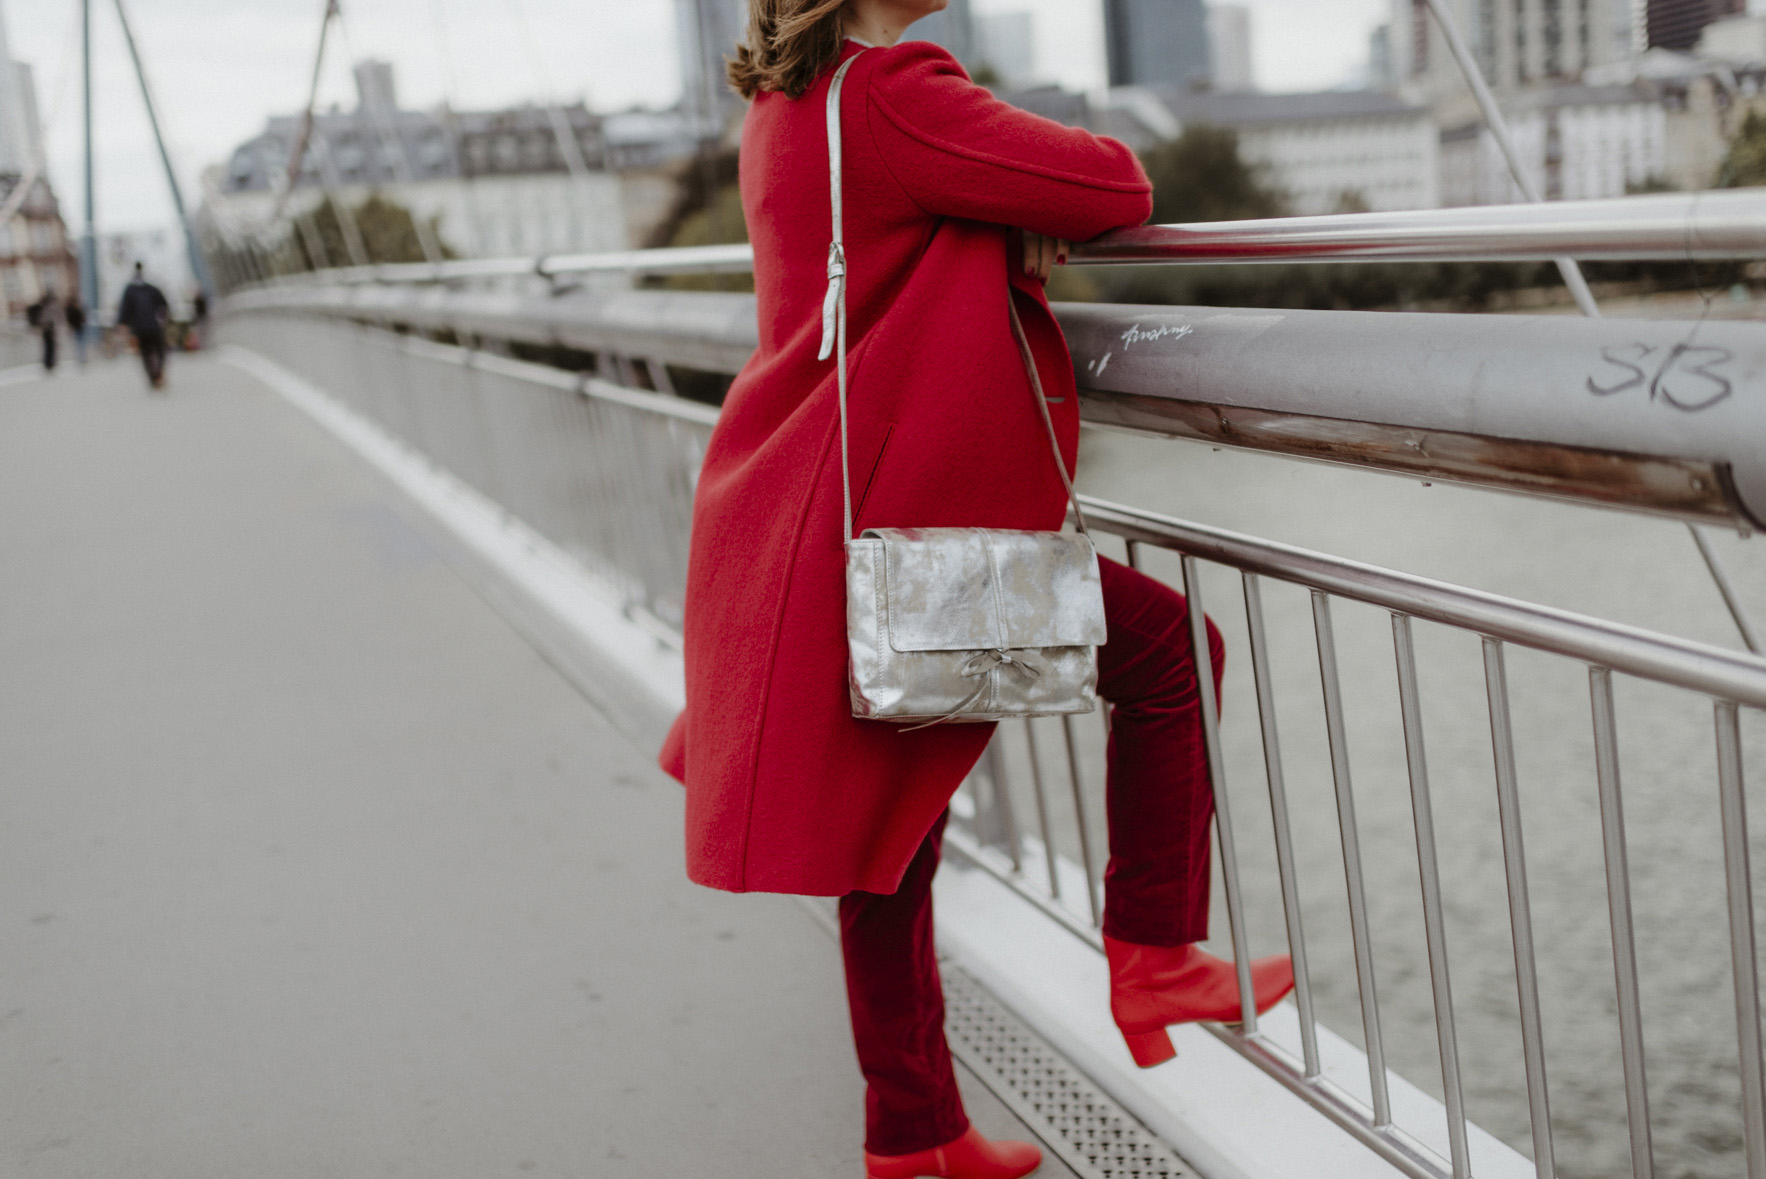 greenlooksgreat-lanius-ninetofive-fairfashion-herbst-rot